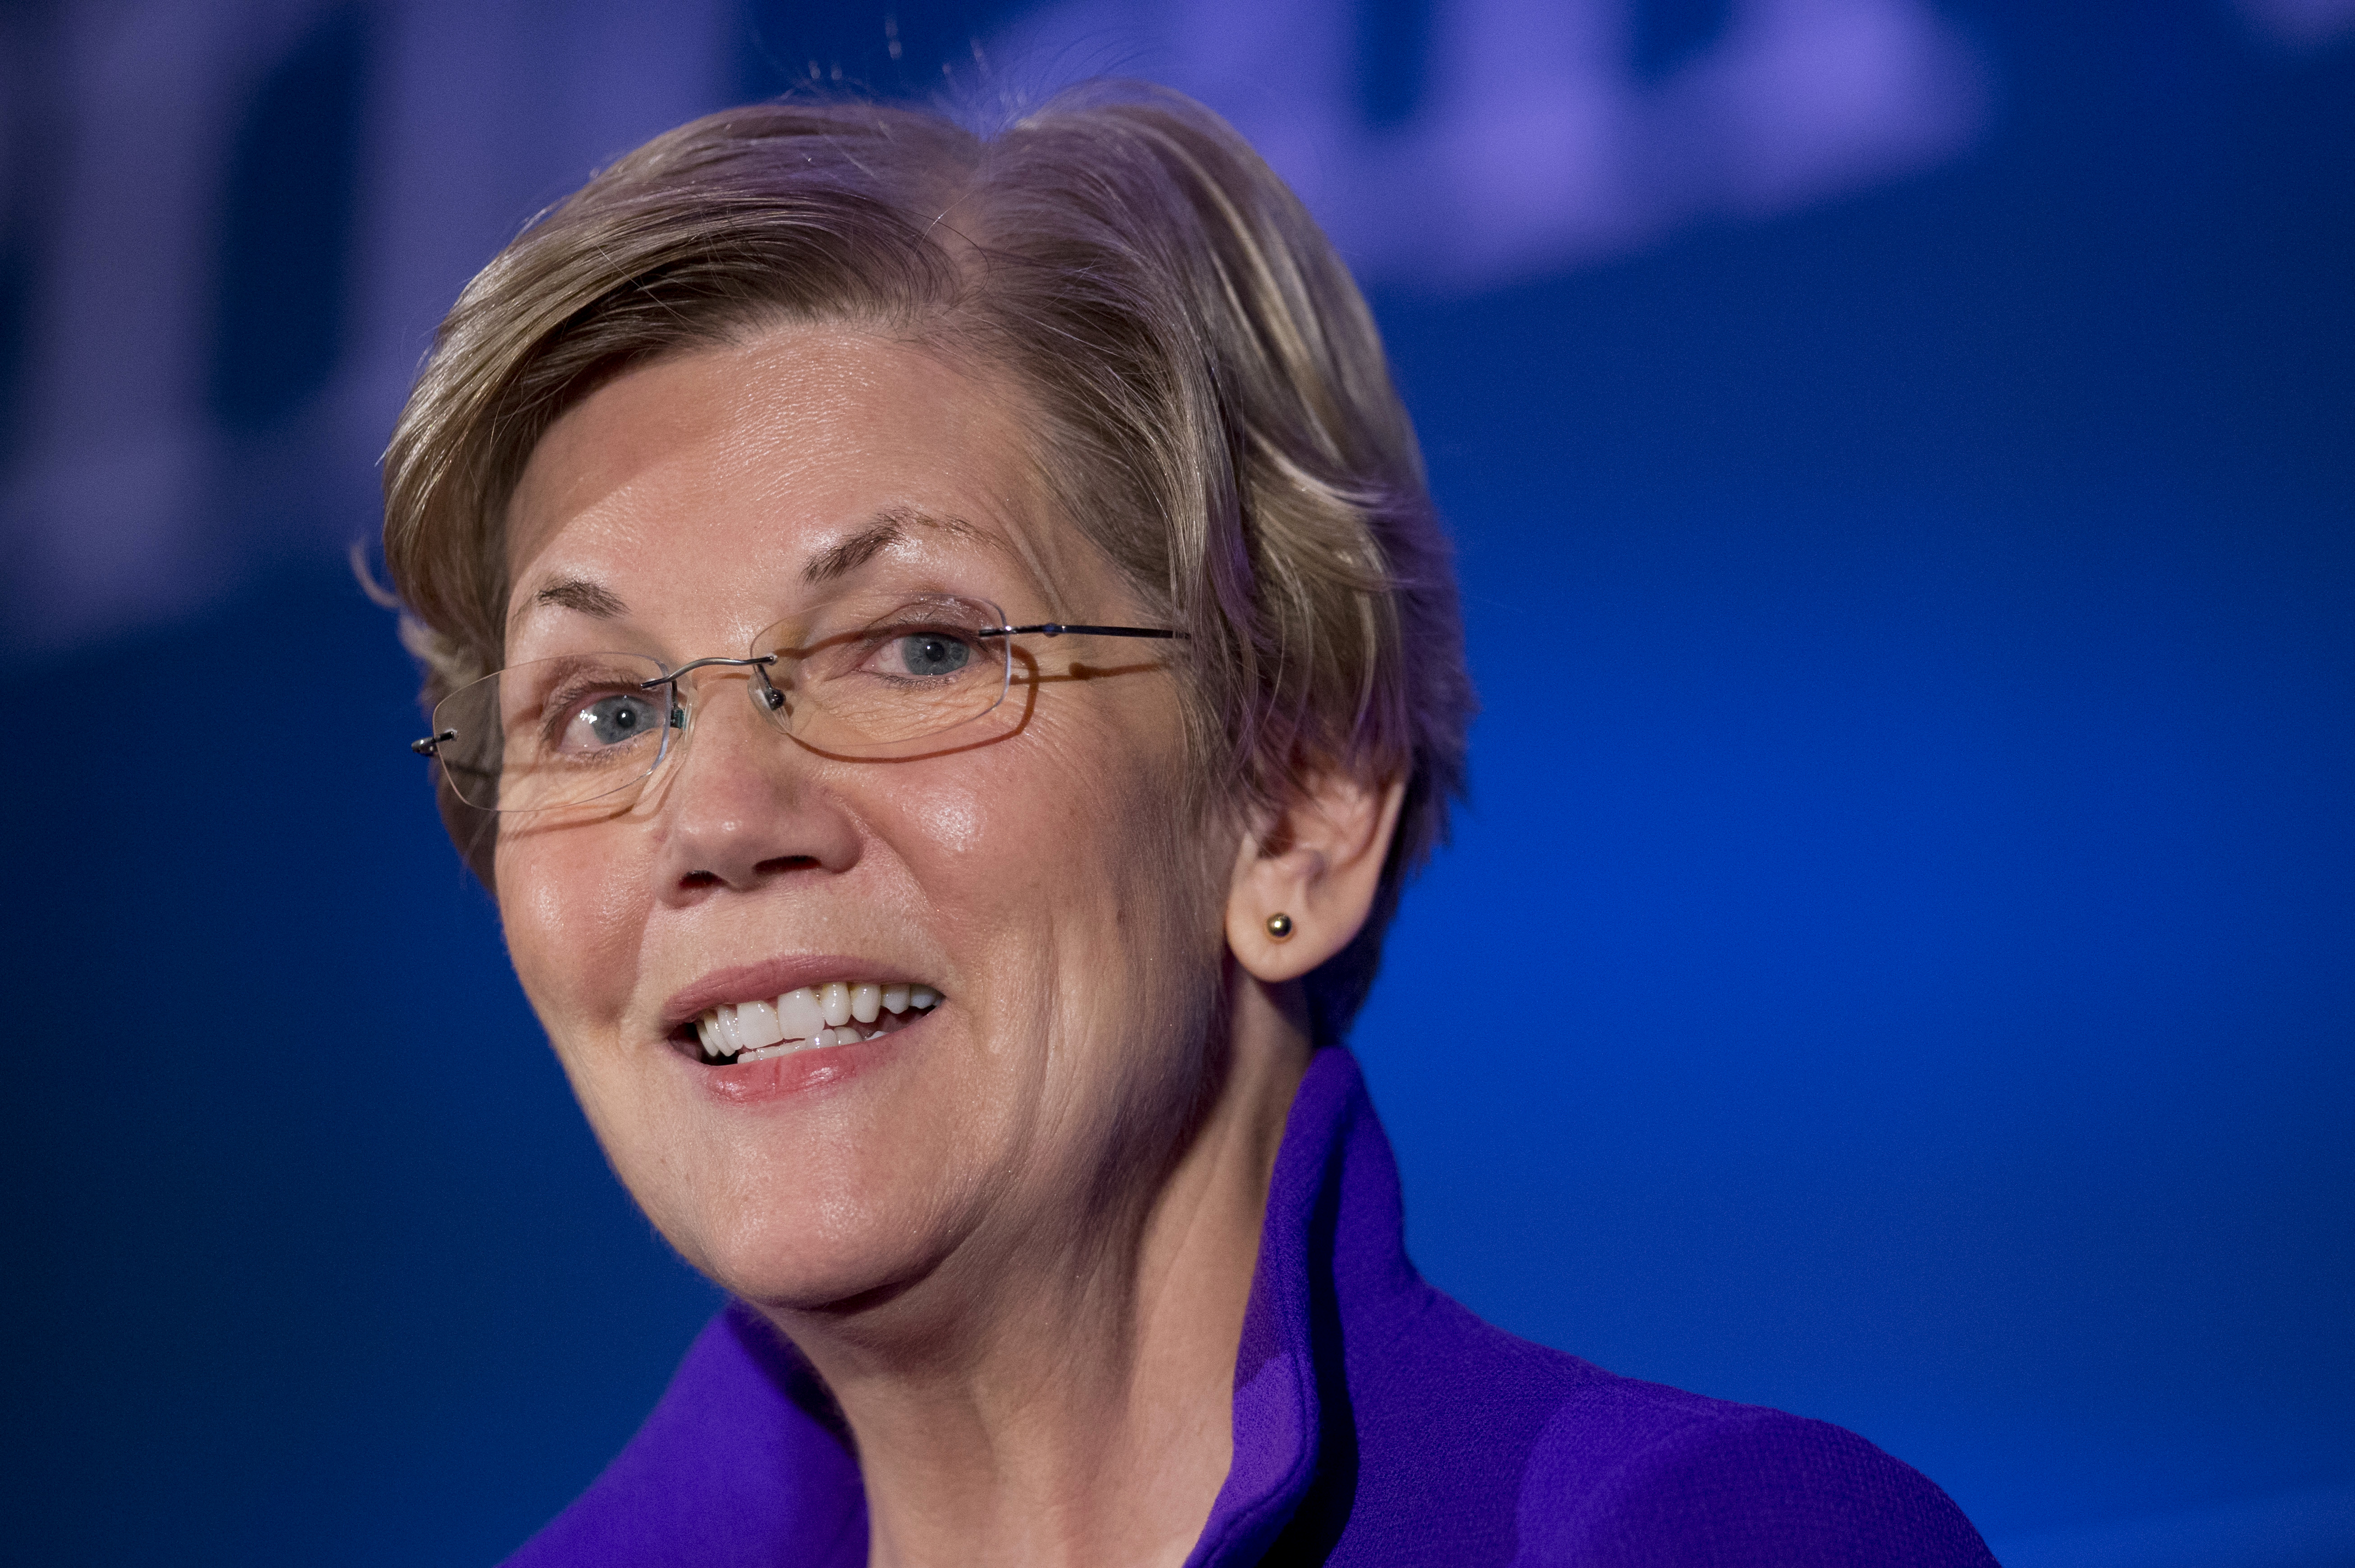 Sen. Elizabeth Warren, D-Mass. speaks to the Center for American Progress�s Second Annual Policy Conference in Washington, Wednesday, Nov. 19, 2014.  (AP Photo/Manuel Balce Ceneta)